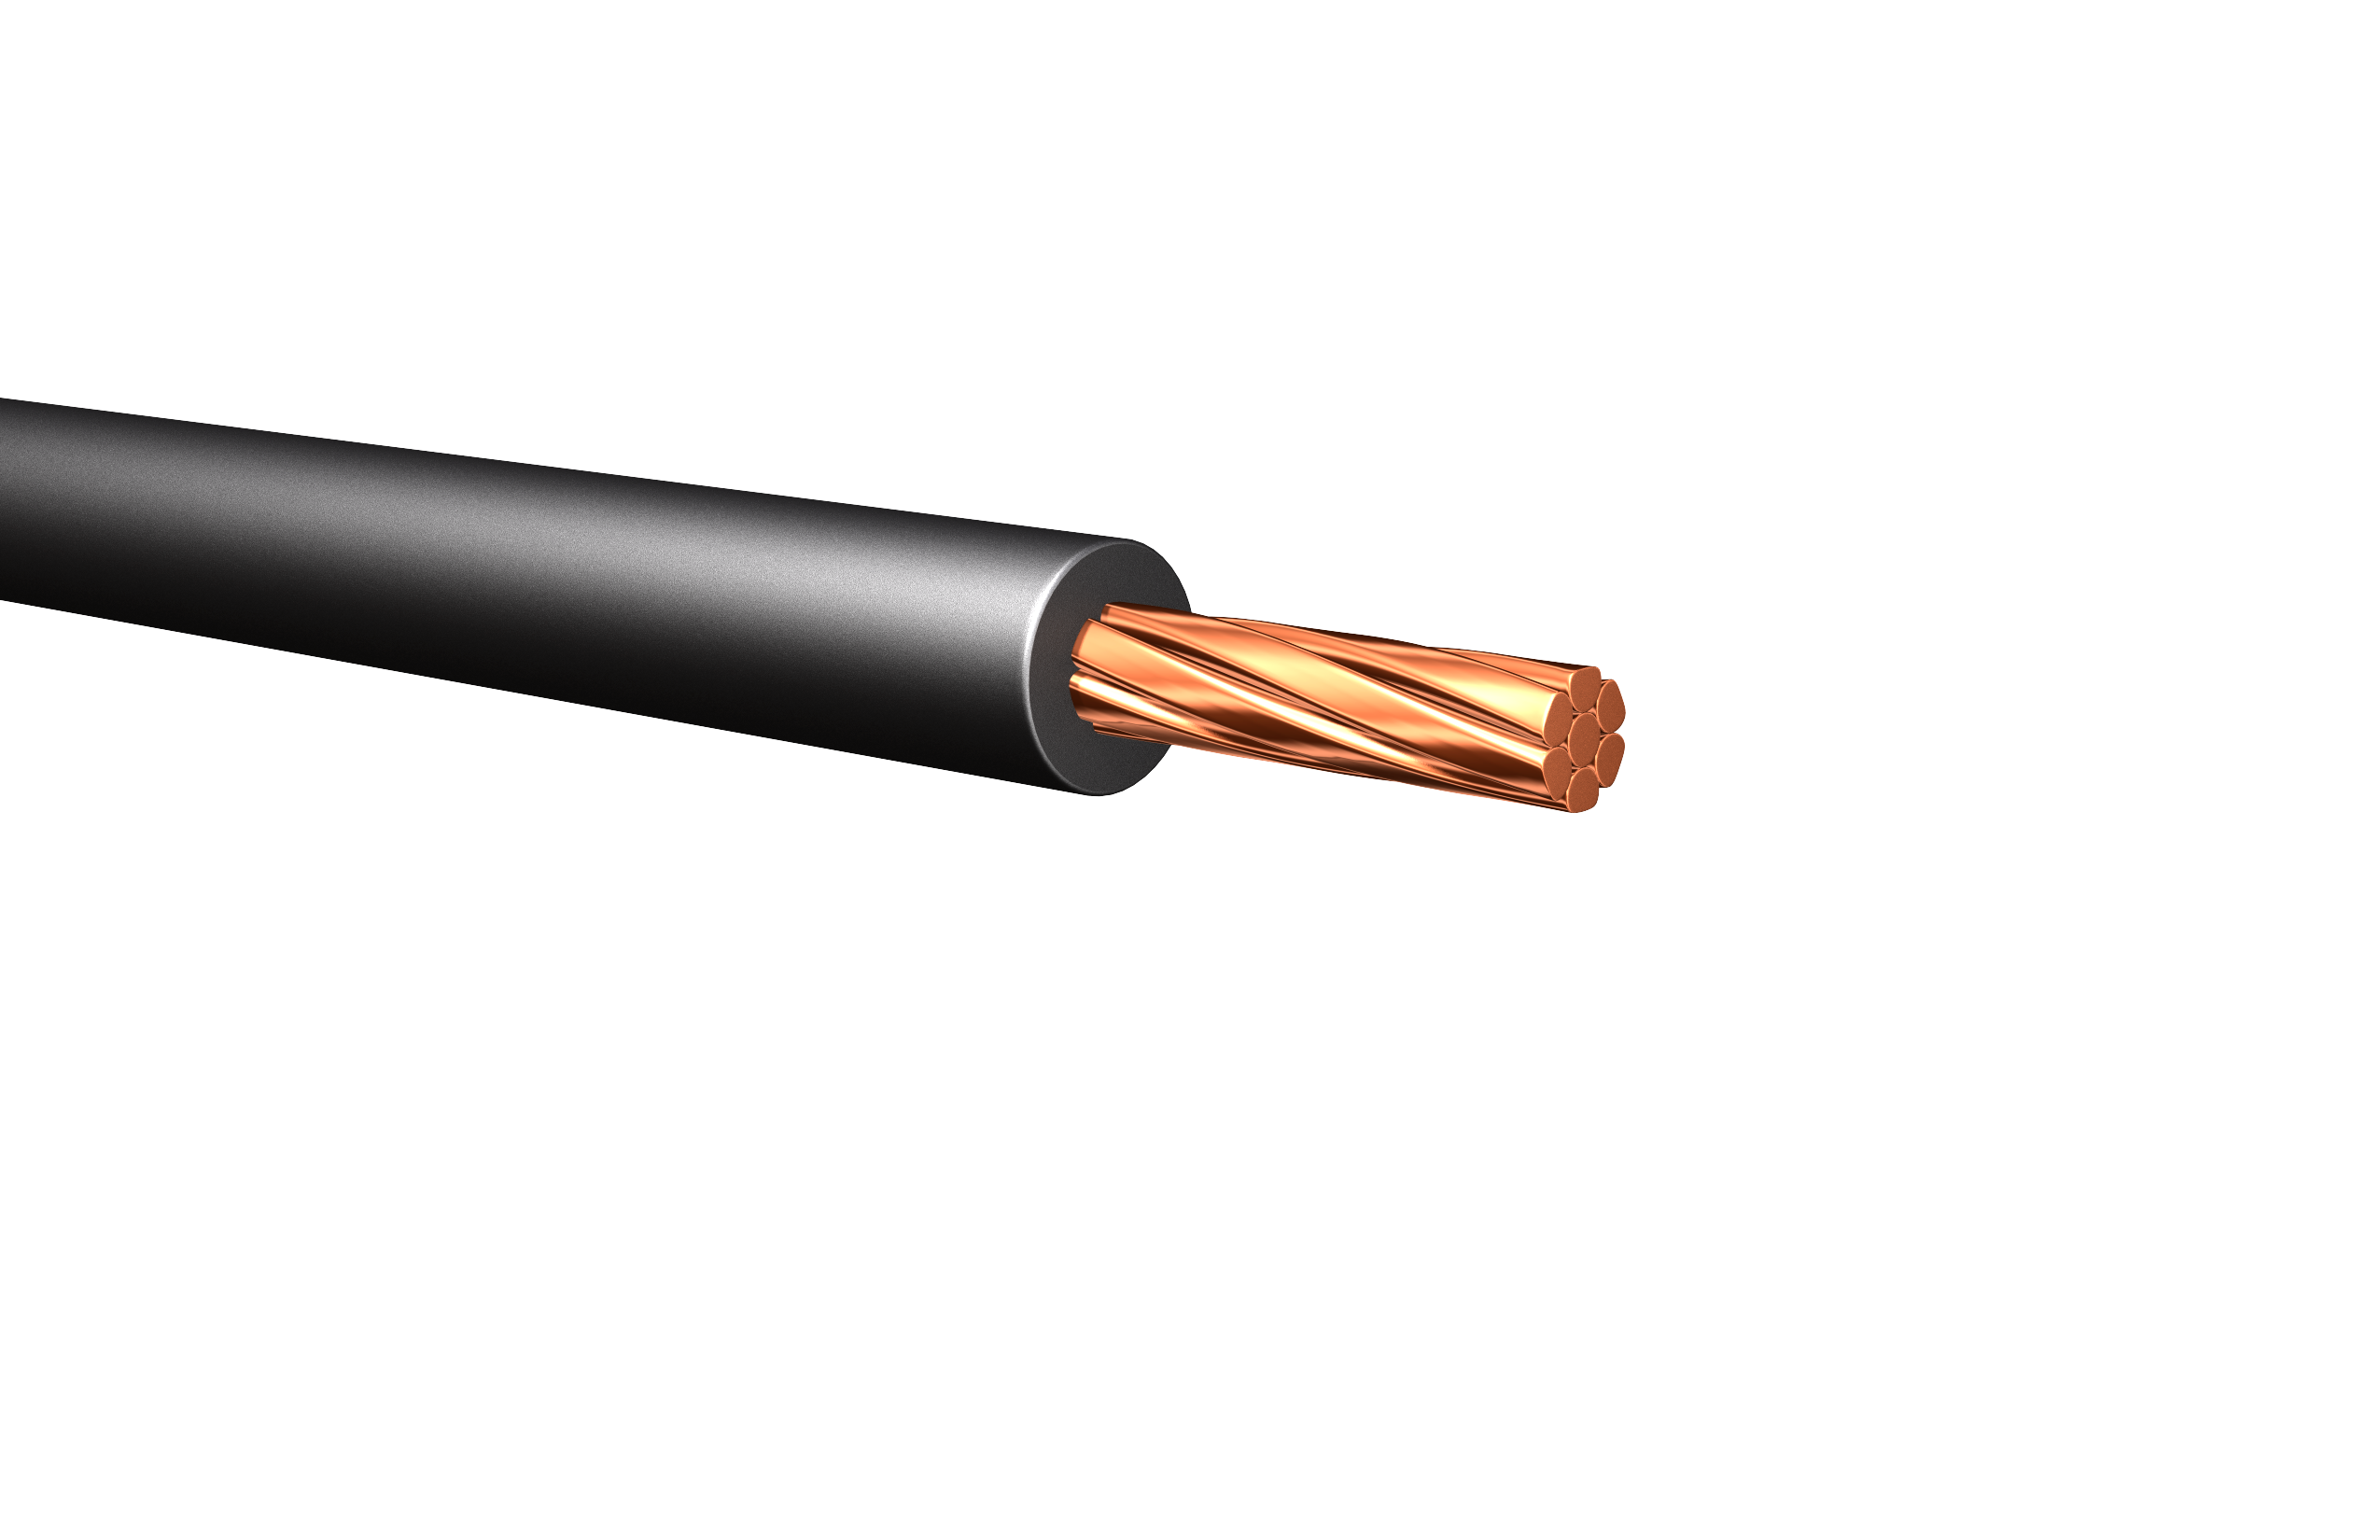 hw200 2 4kv non shielded power cable xlp houston wire cable co rh houwire com XHHW Copper Solid 5C 14 AWG XHHW Cable